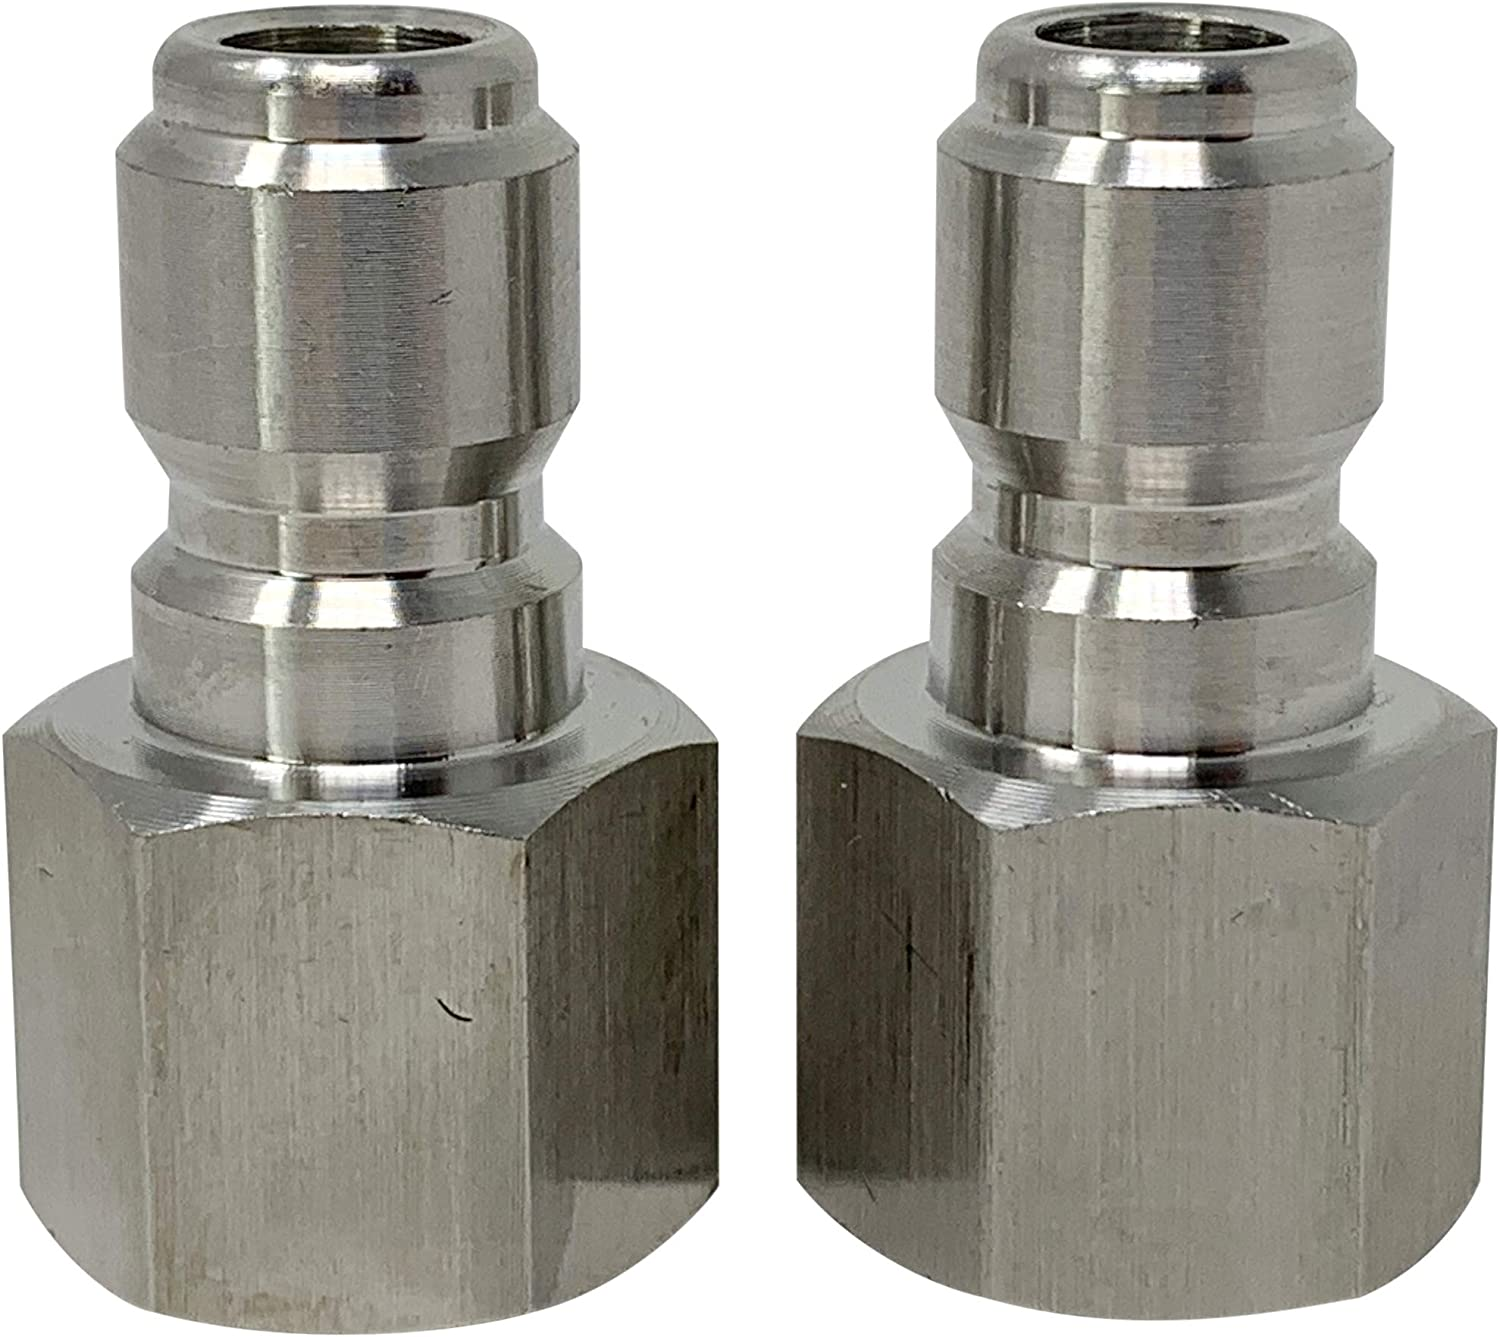 New mail order ESSENTIAL WASHER Pressure Washer Fittings Steel 3 Stainless 8 Max 79% OFF In